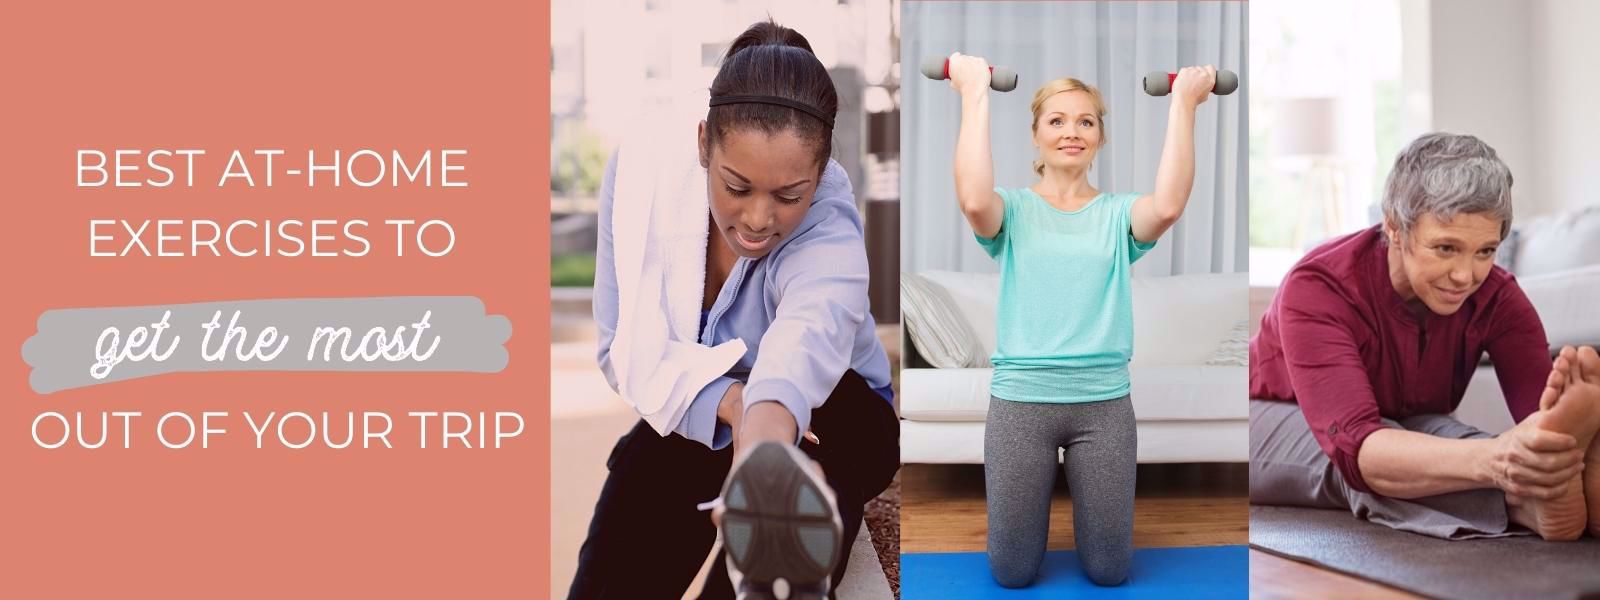 Best at-home exercises to get the most out of your trip